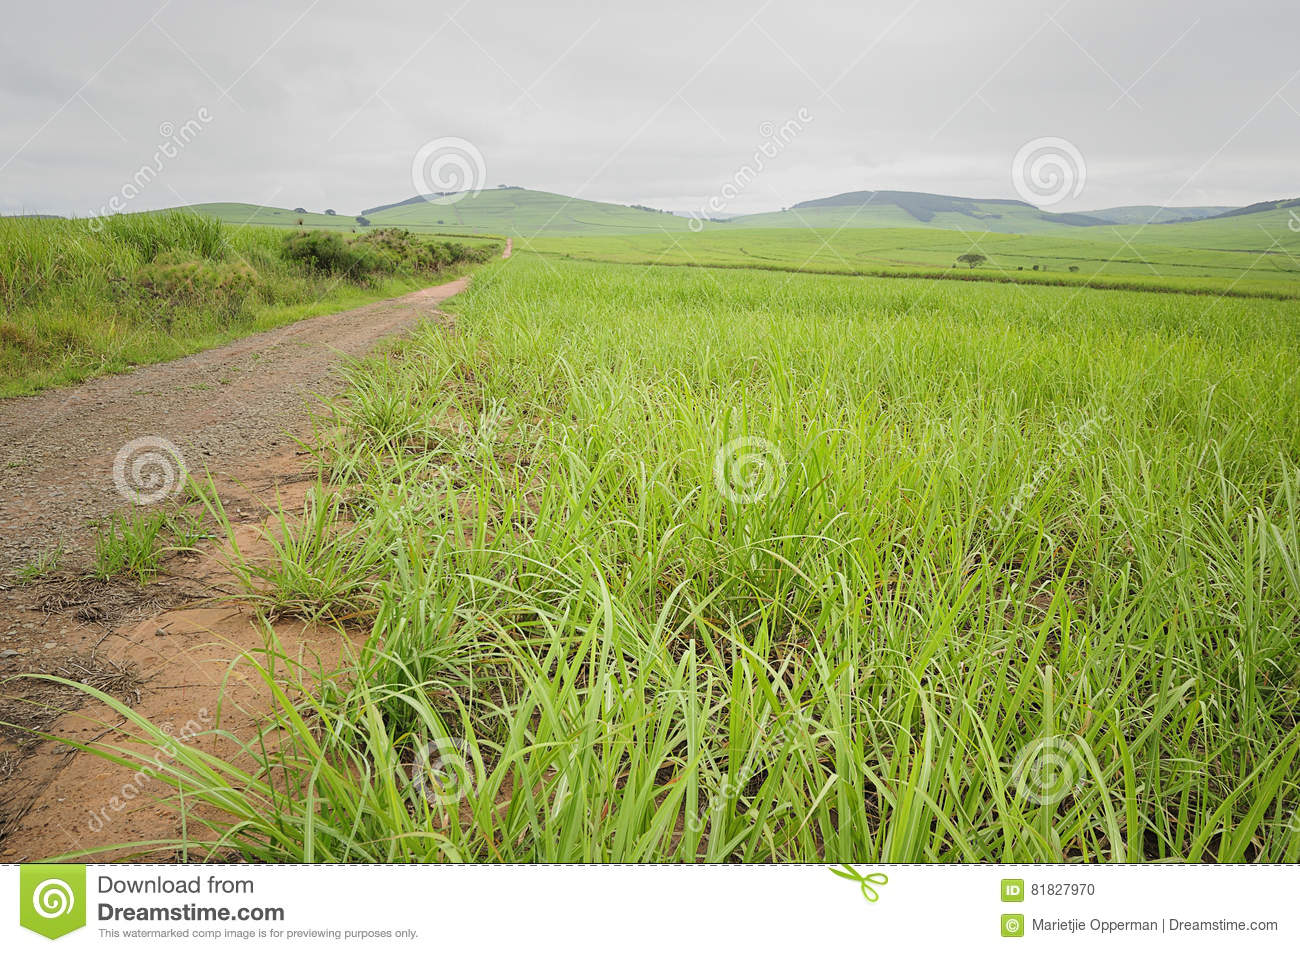 Young sugar cane plants